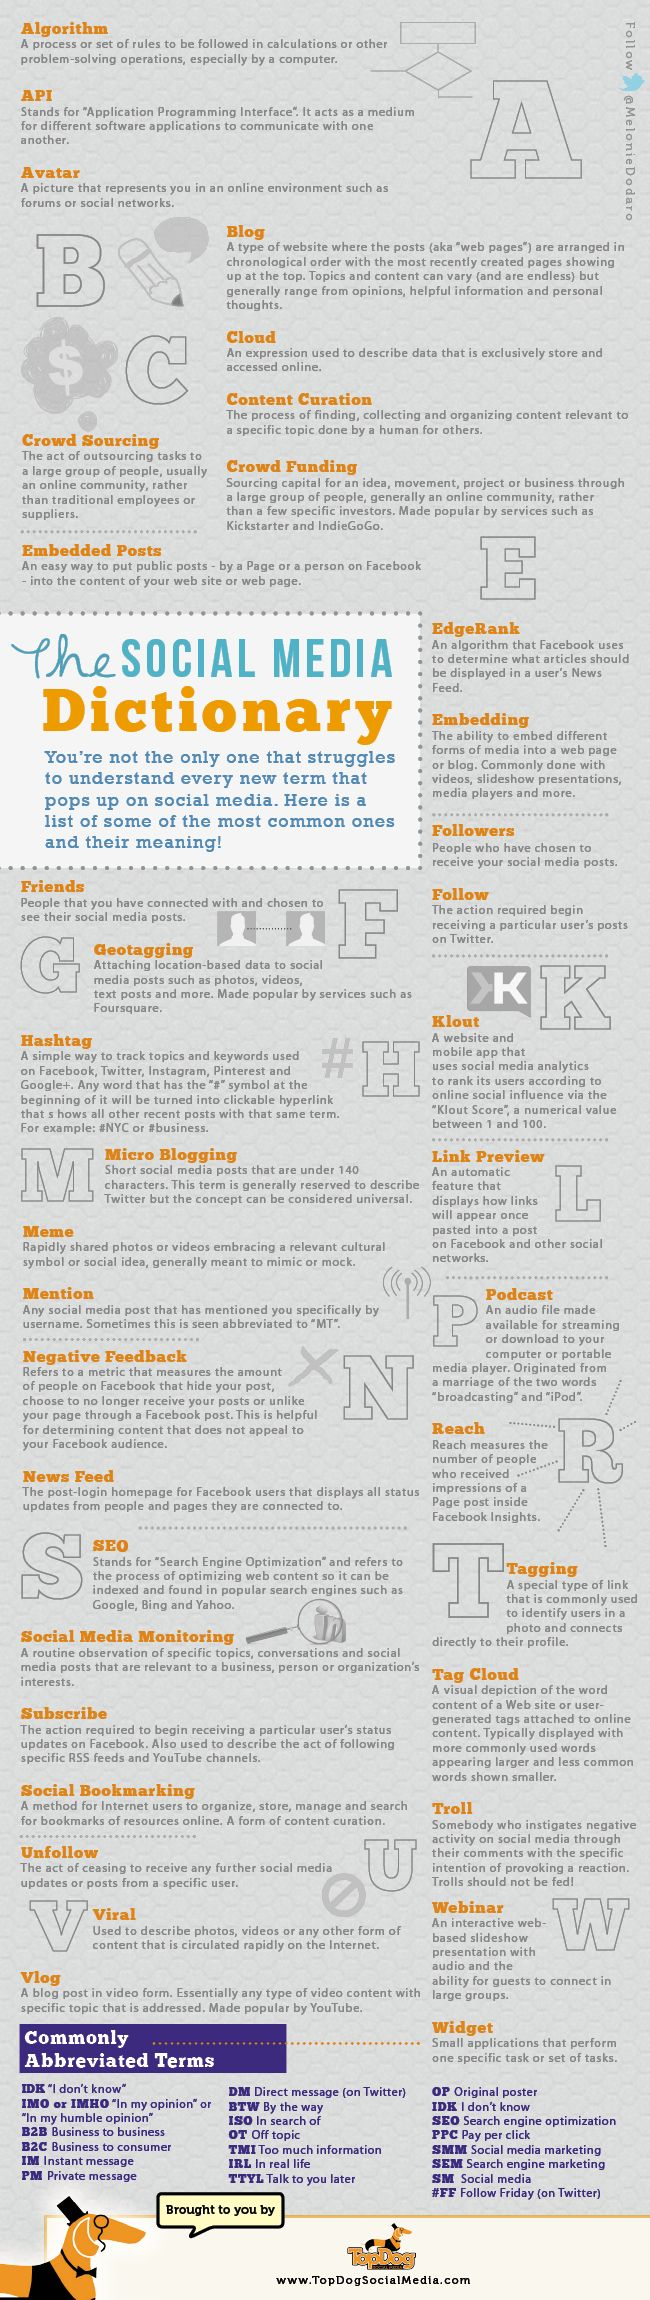 The Complete Social Media Dictionary; Social Media Glossary of Terms  Are you often confused by some of the terms that didn't exist a few short years ago? Social media has created it's own language. In this article and handy infographic I have tried to remove the mystery out of some of the common social media language.  In this article you will find a complete social media dictionary.   http://topdogsocialmedia.com/social-media-dictionary/  #Socialmedia